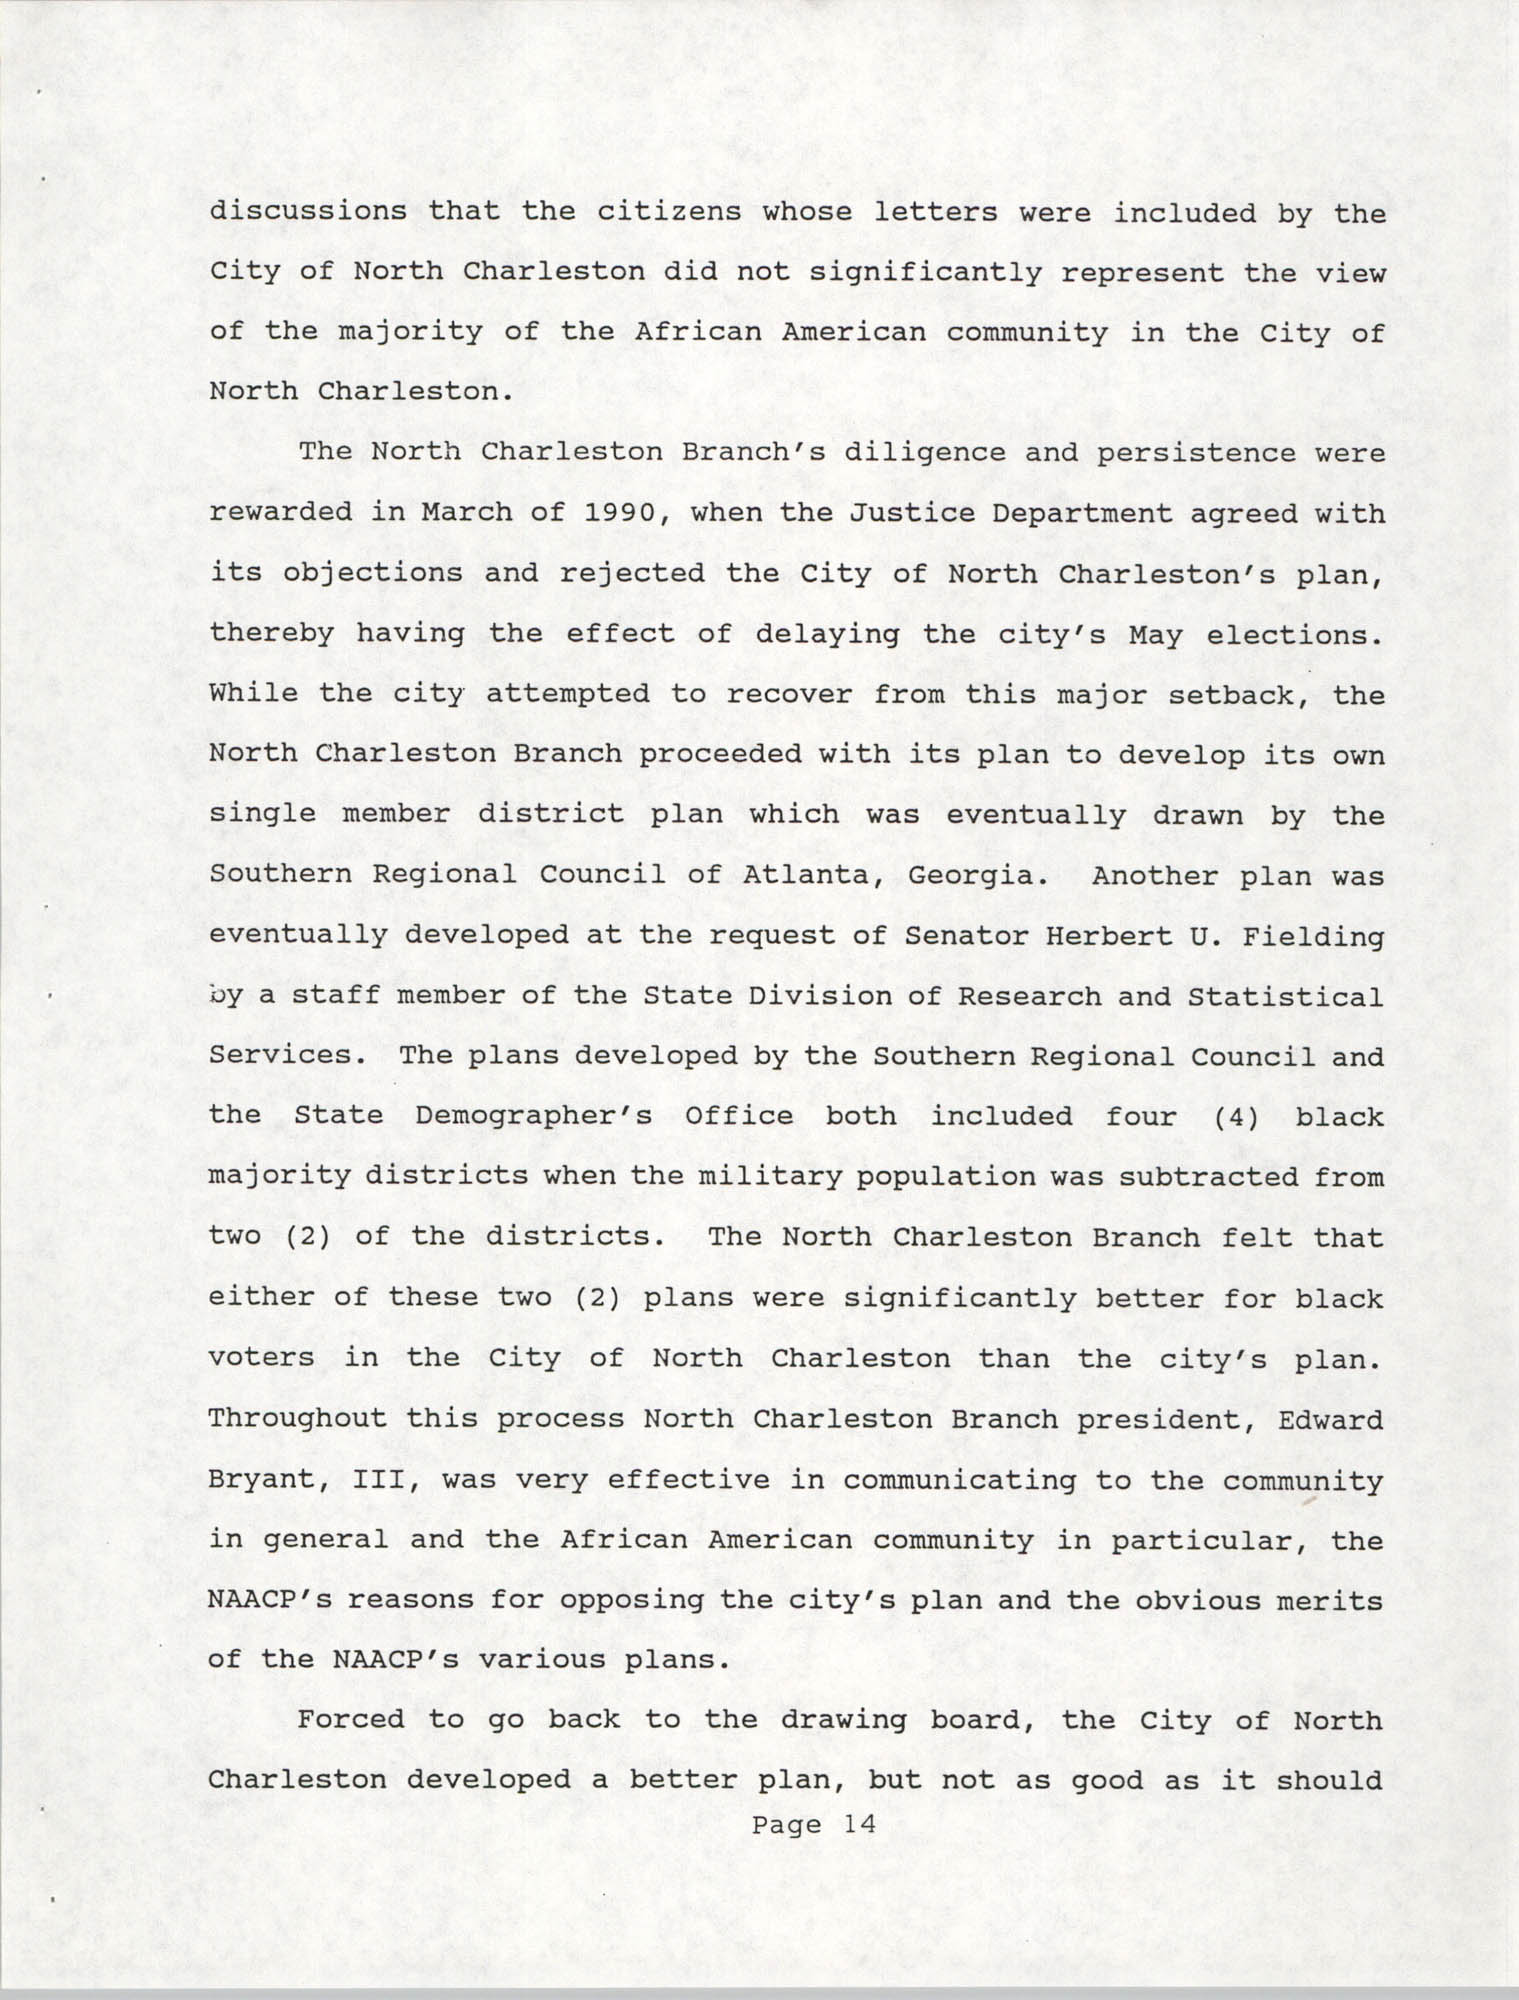 South Carolina Conference of Branches of the NAACP, 1990 Annual Report, Part One, Page 14